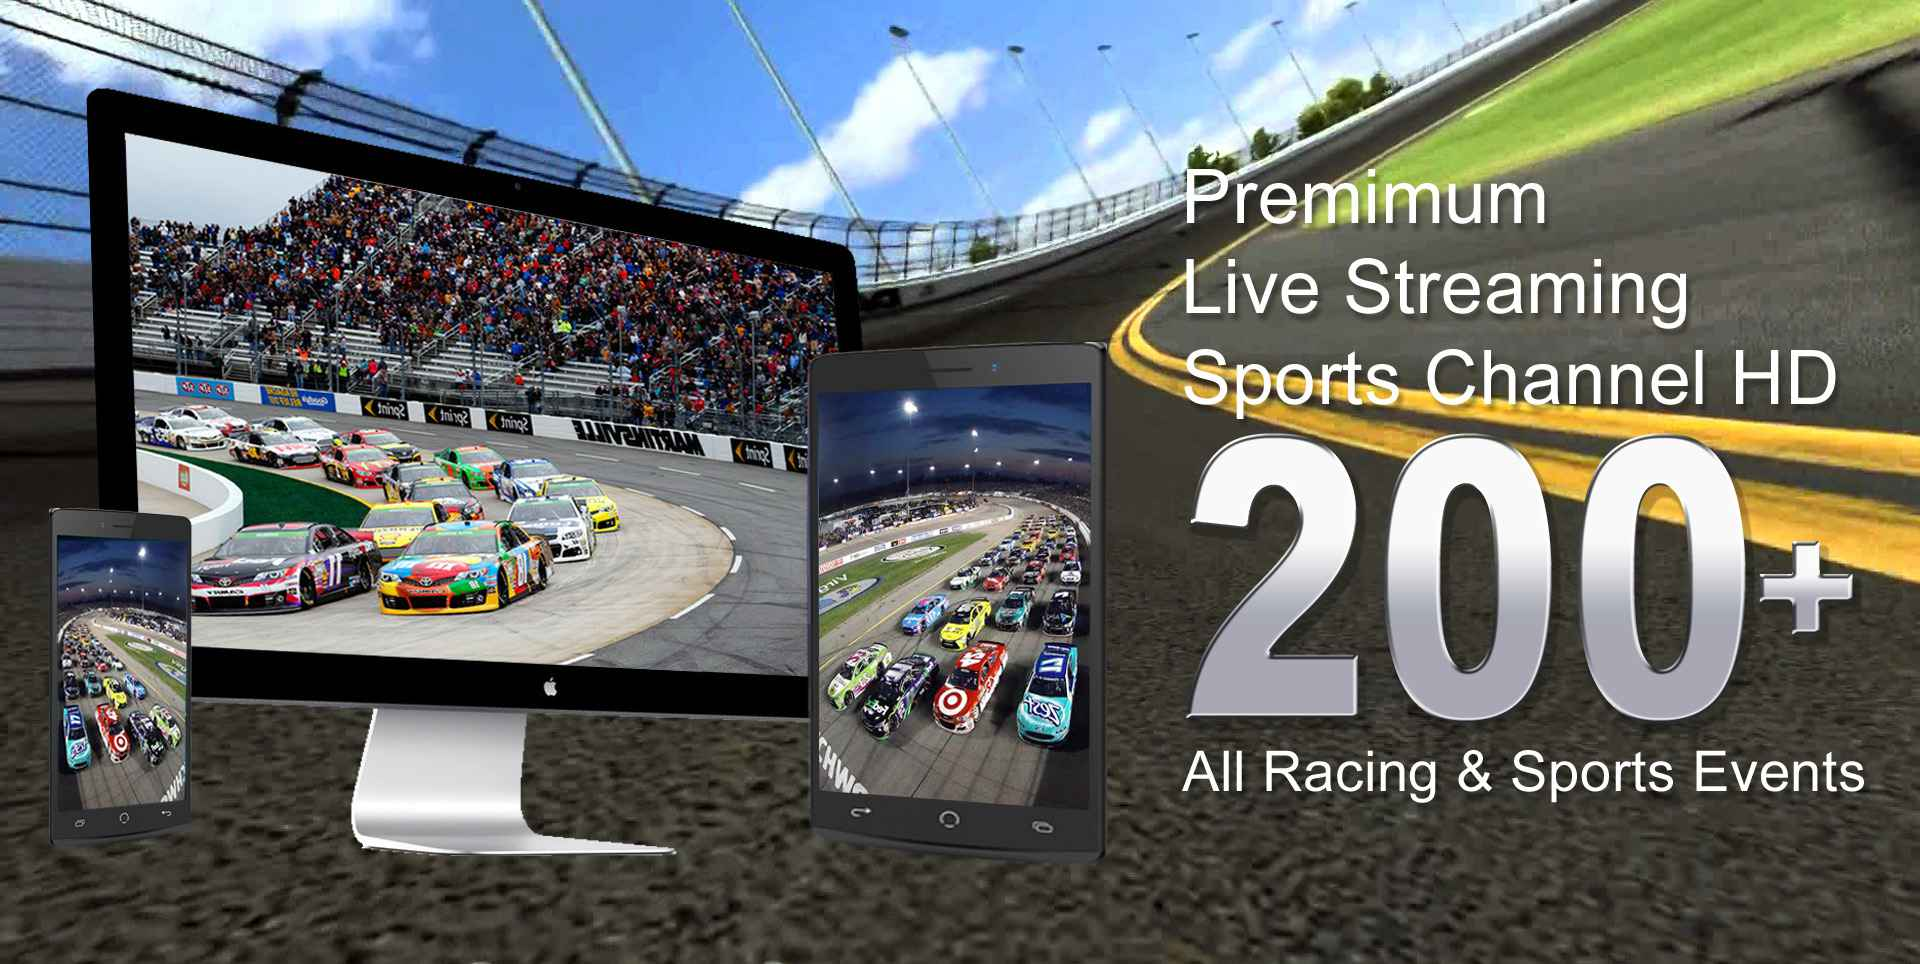 Watch Nascar Lilly Diabetes 250 Race Live On Android